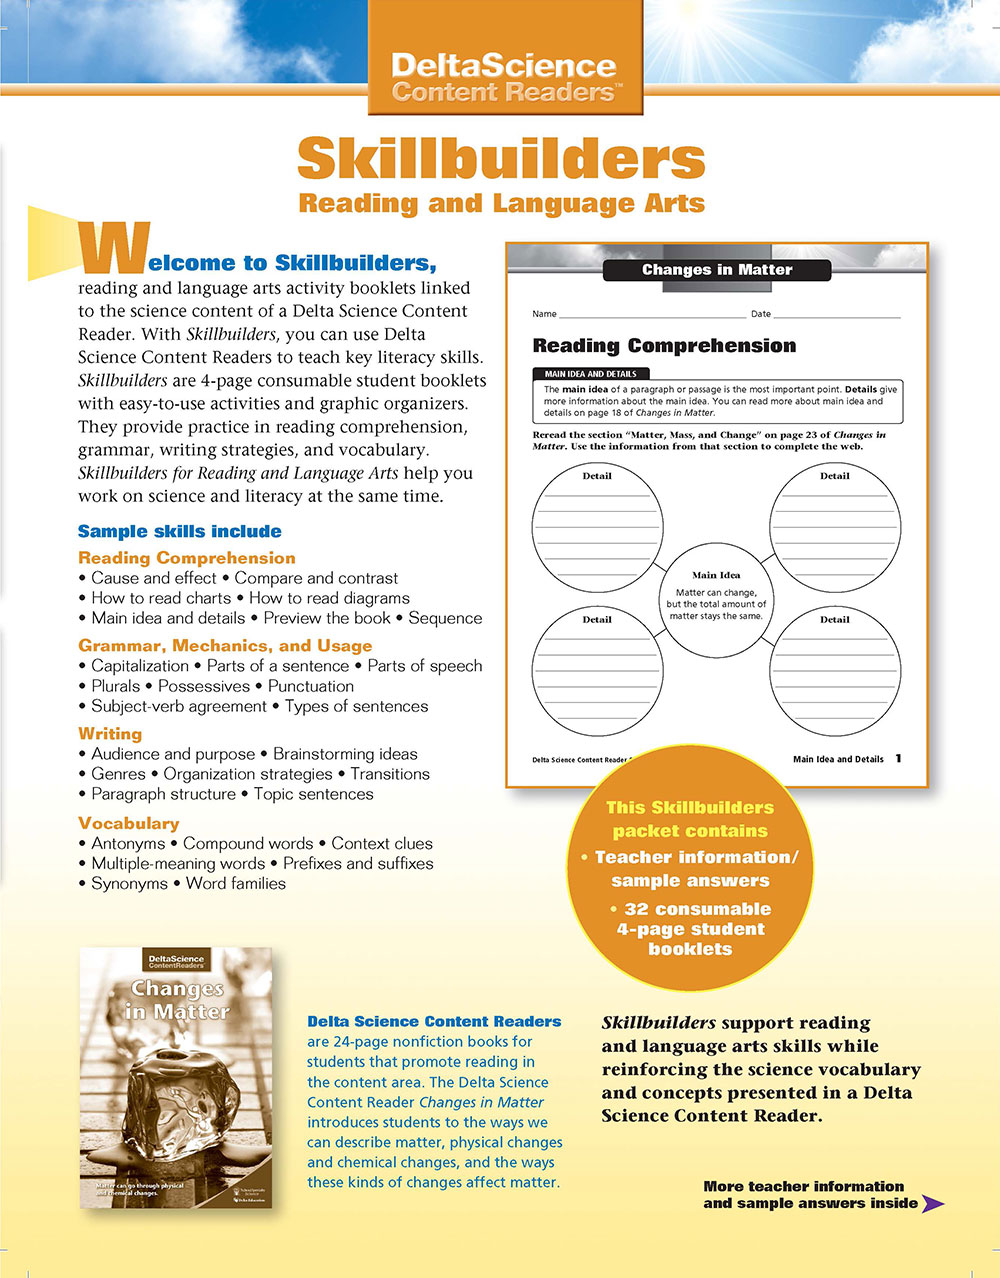 Skillbuilders - Pack of 32